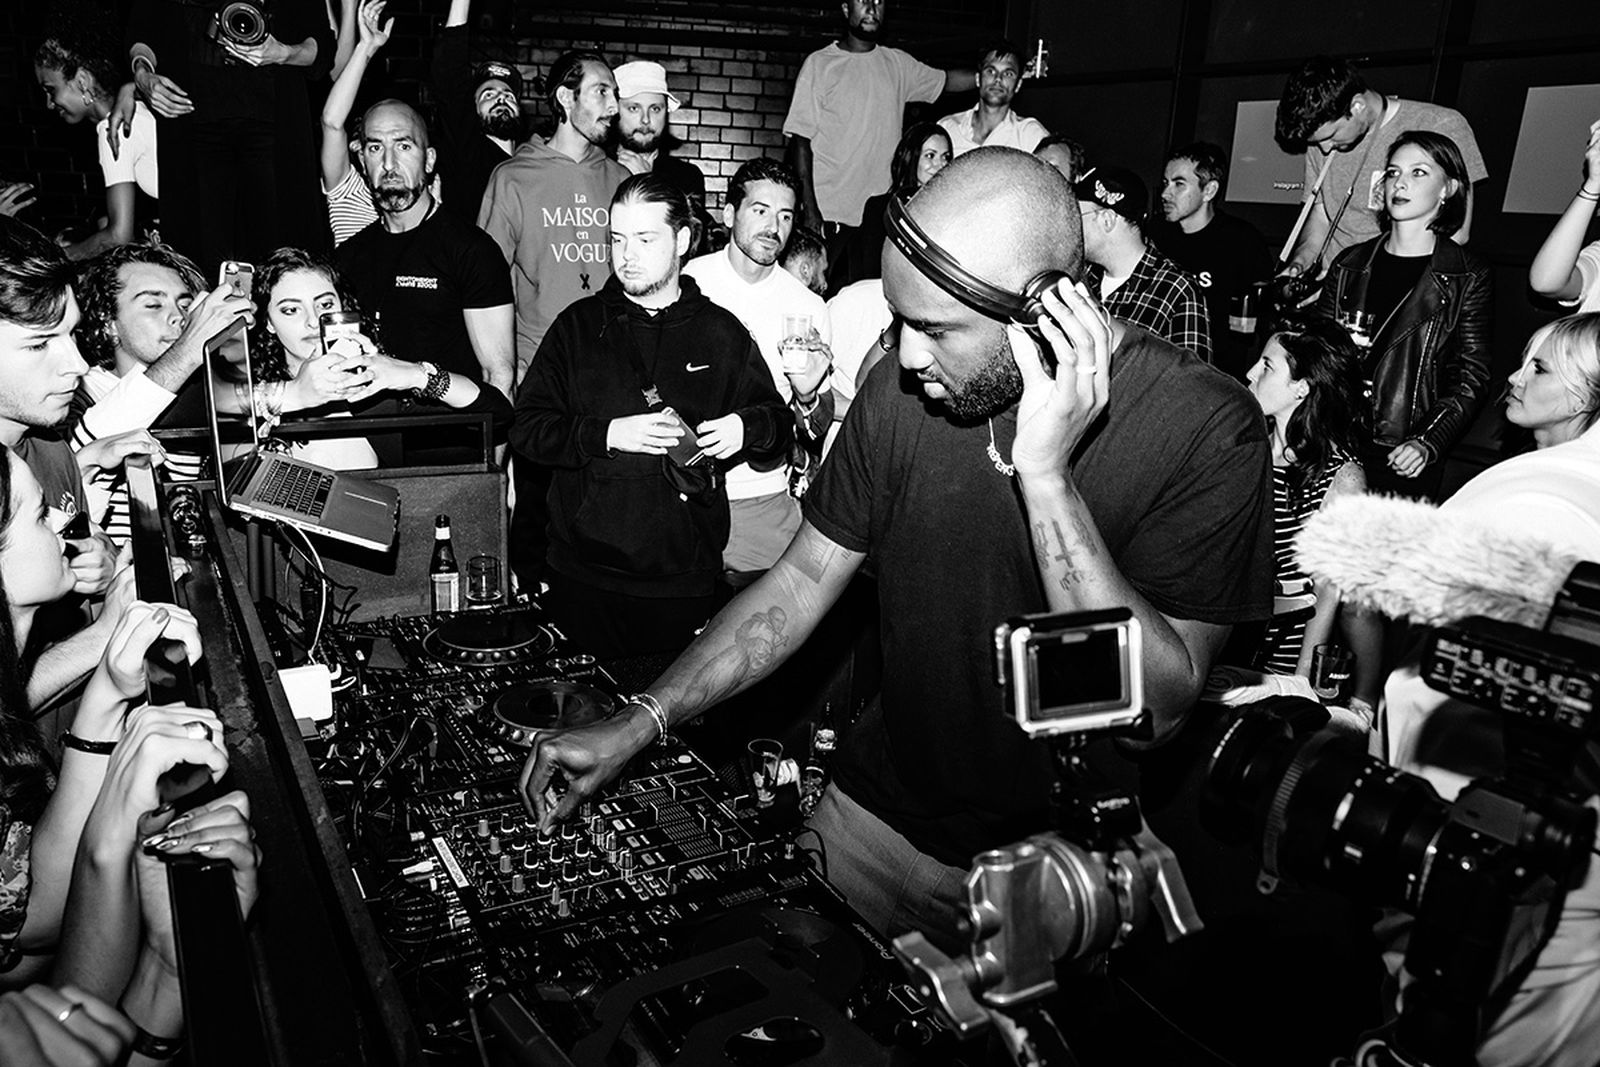 virgil abloh talks djing chicago his favorite music of 2018